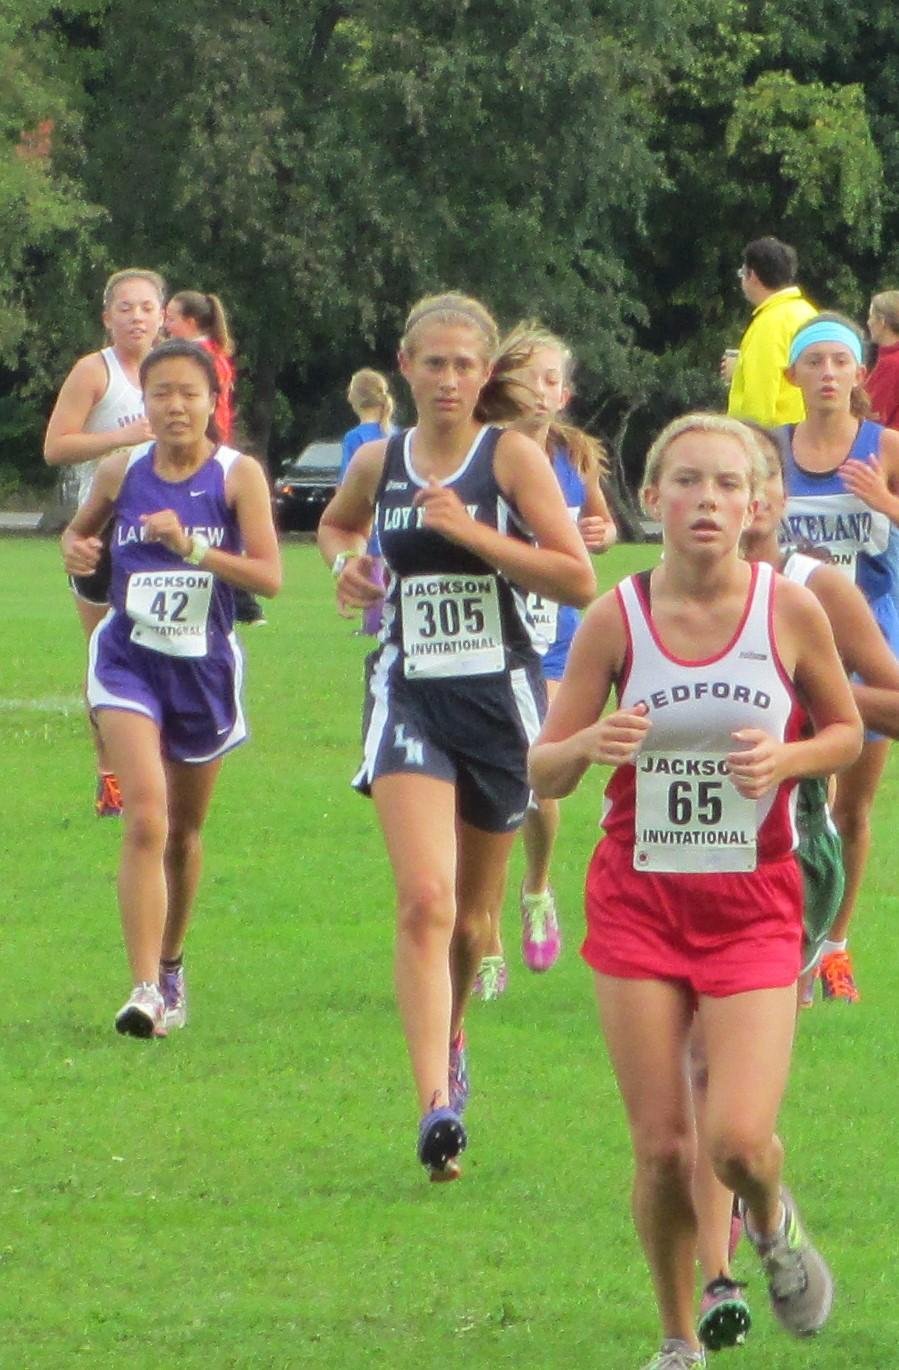 Sophomore Olivia Vande Pol, (center) running in a cross country meet for Loy Norrix Highschool. She is hoping to beat her personal best mile time of 6:30.